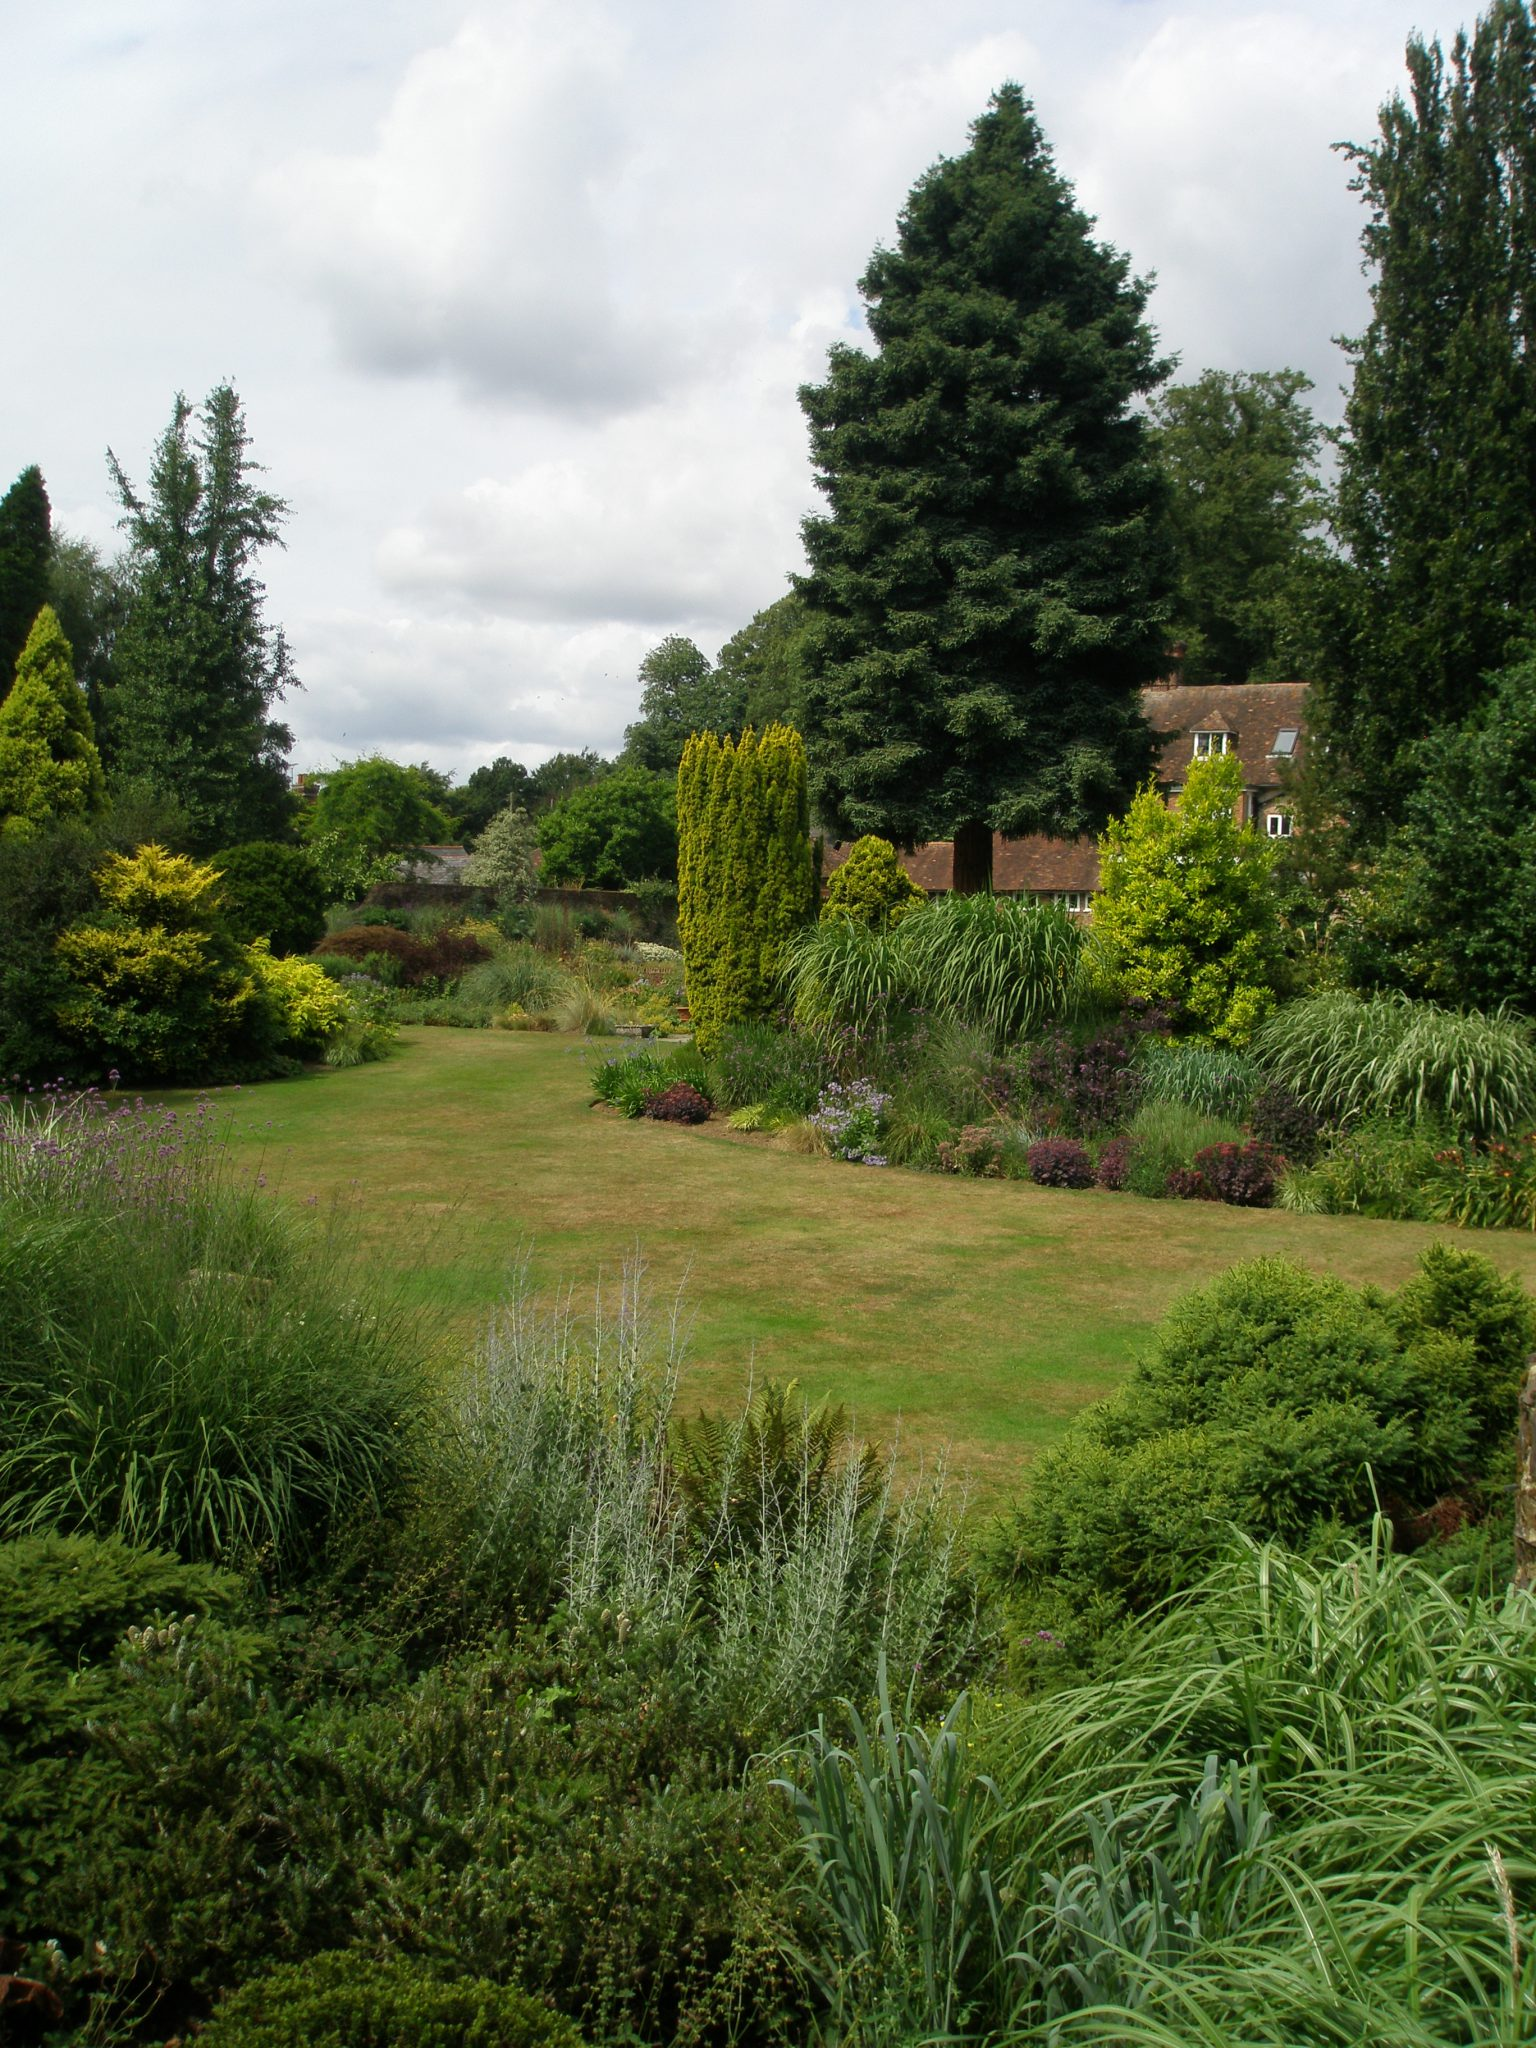 View from atop the Tower, over Crescent Lawn, toward the back of the House